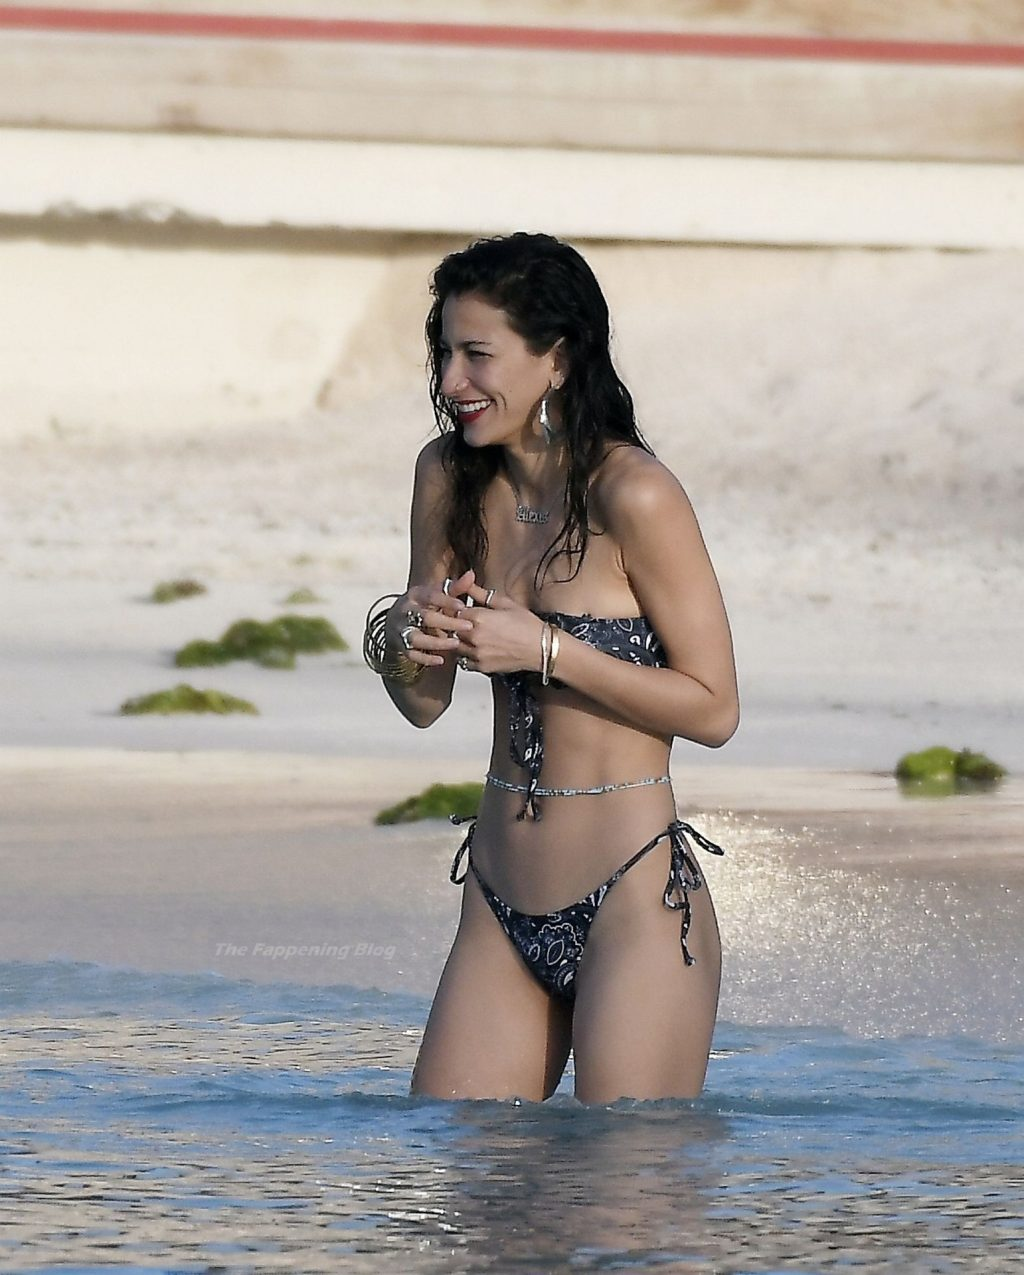 Lexy Panterra Shows Her Incredible Physique While Enjoying the Caribbean Sun on the Beach in St Barths (55 Photos)